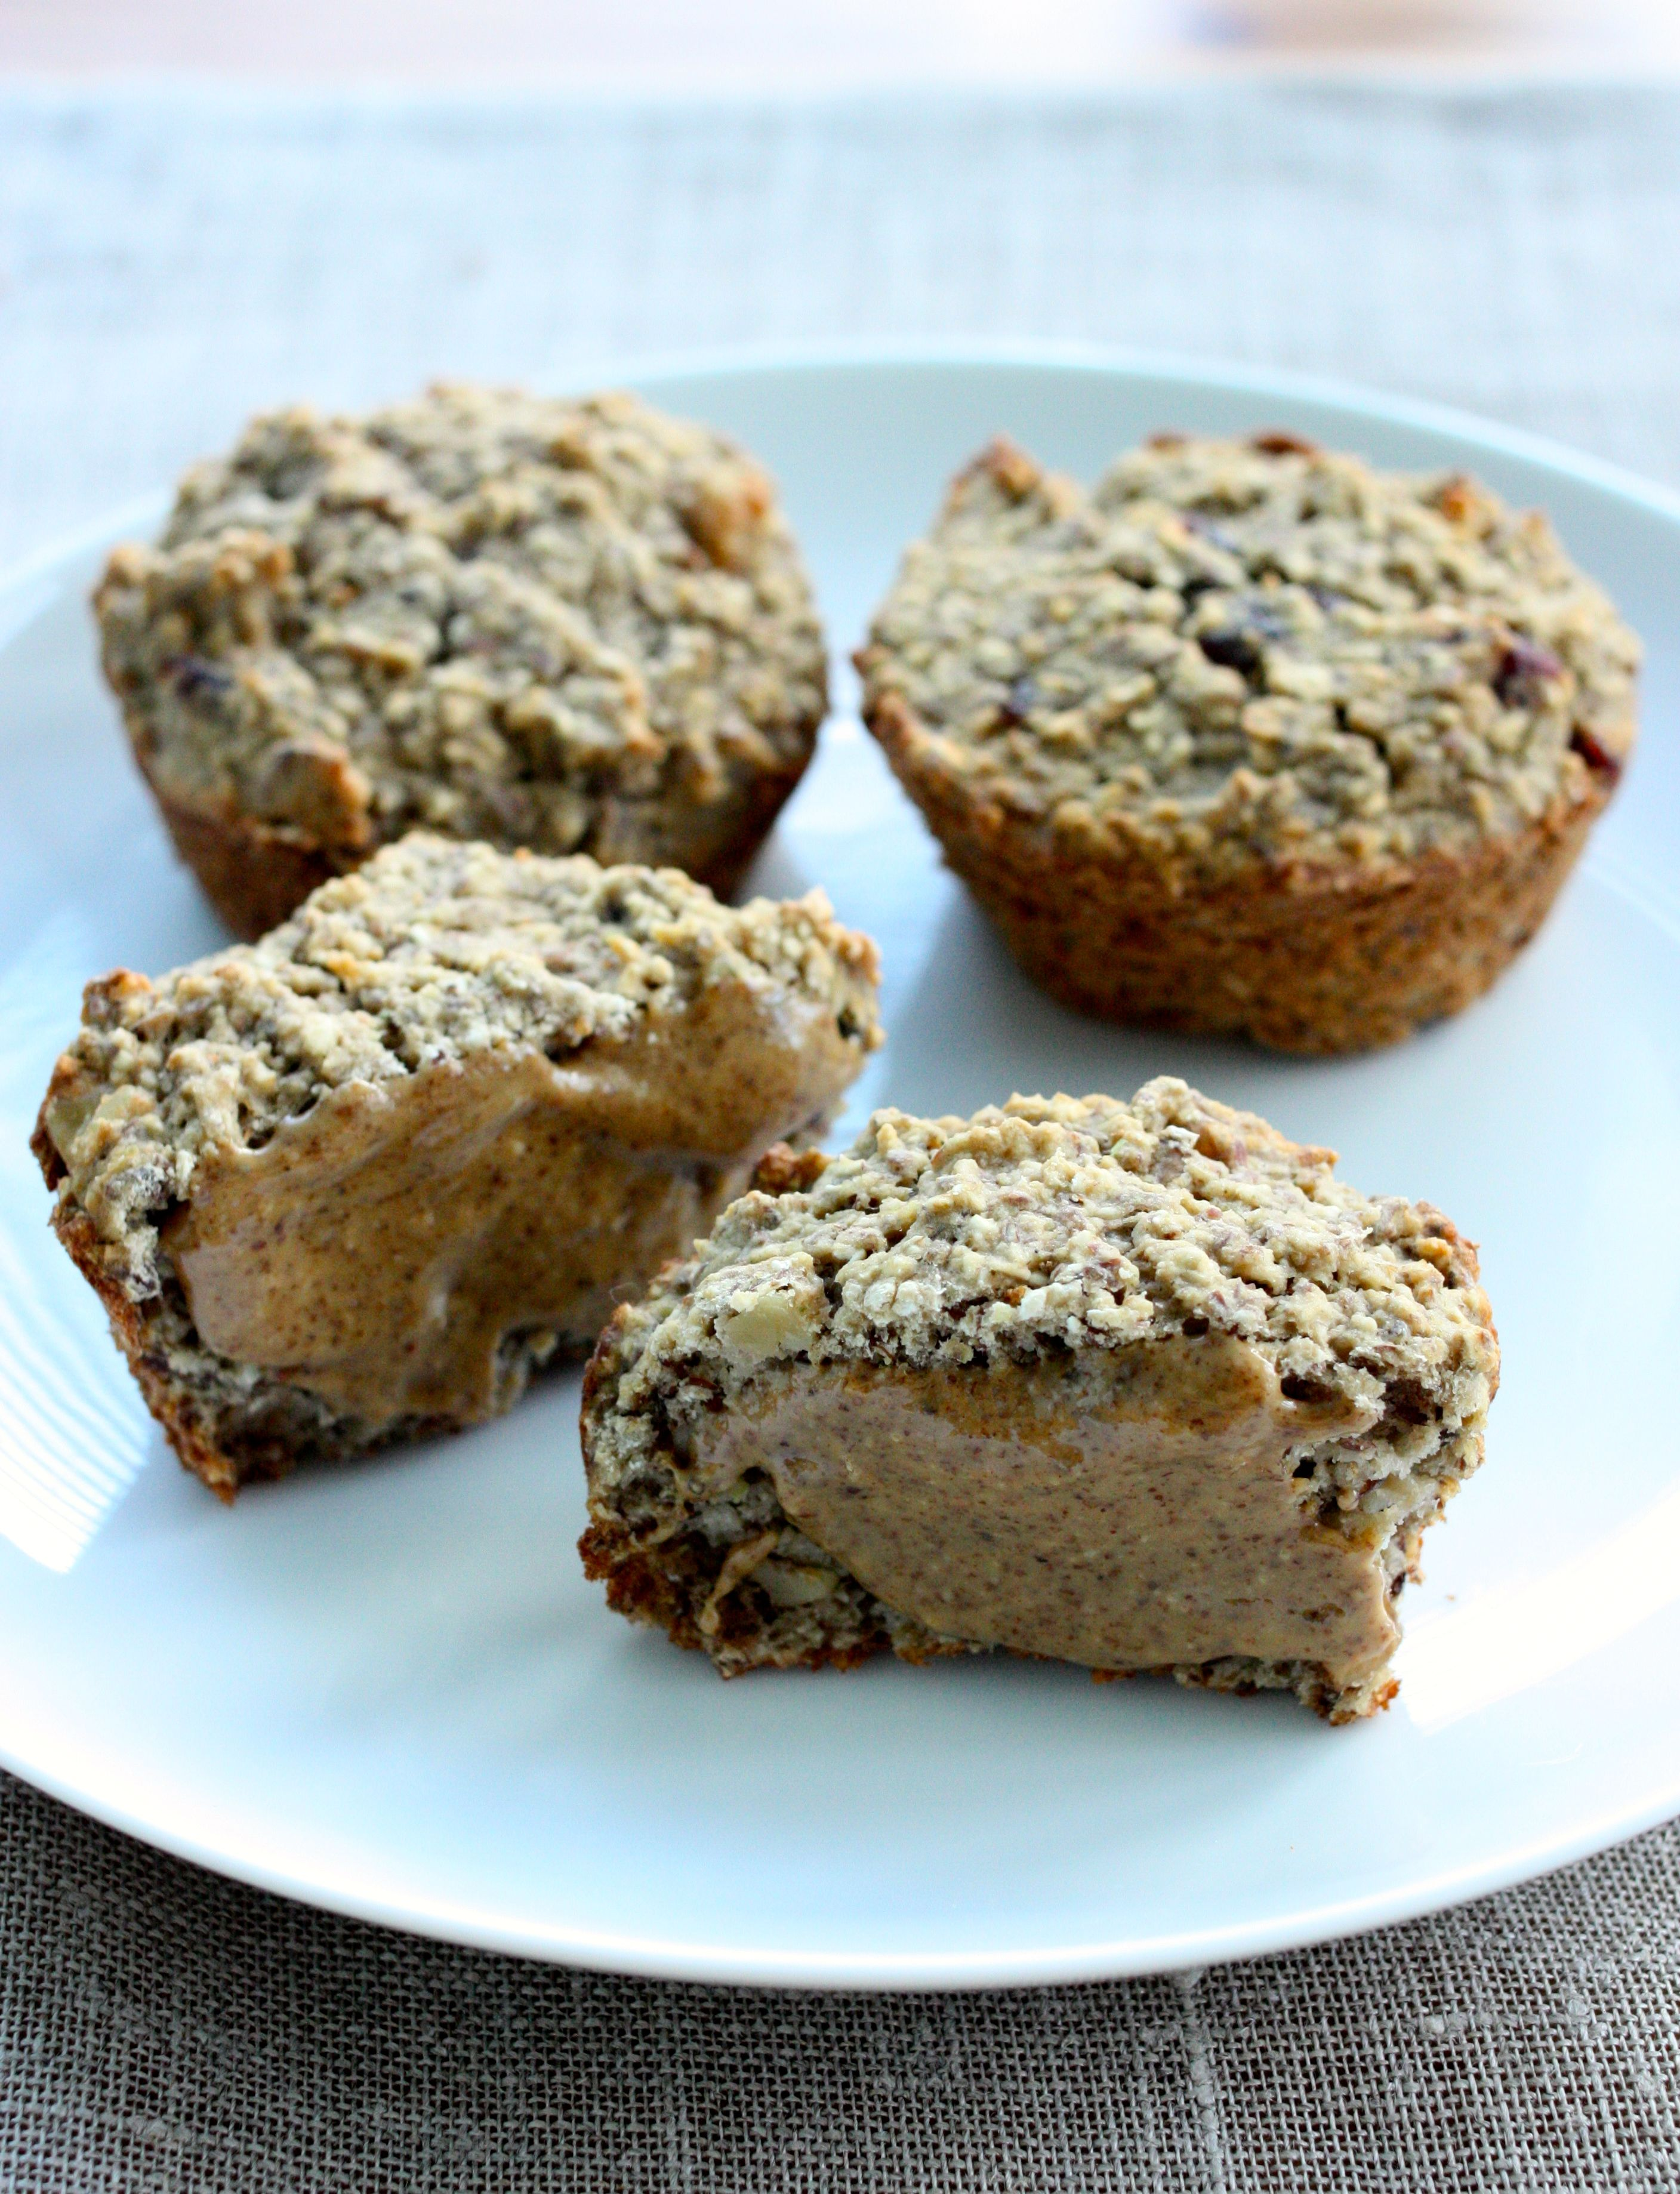 Banana Oat Muffins Gluten Free Higher Protein Option The Full Helping